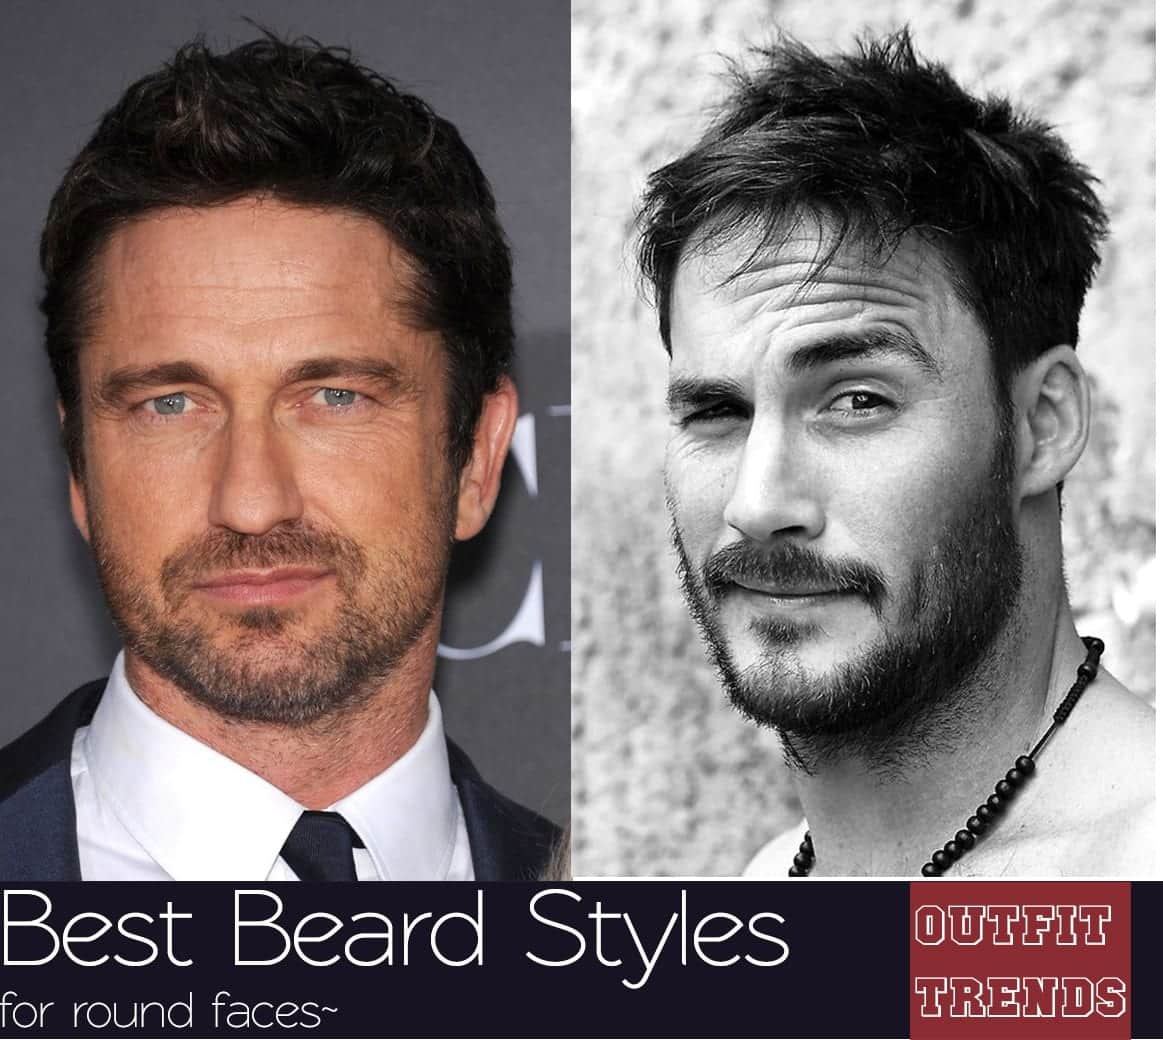 featured-image Beard Styles for Round Face-28 Best Beard Looks for Round Faces